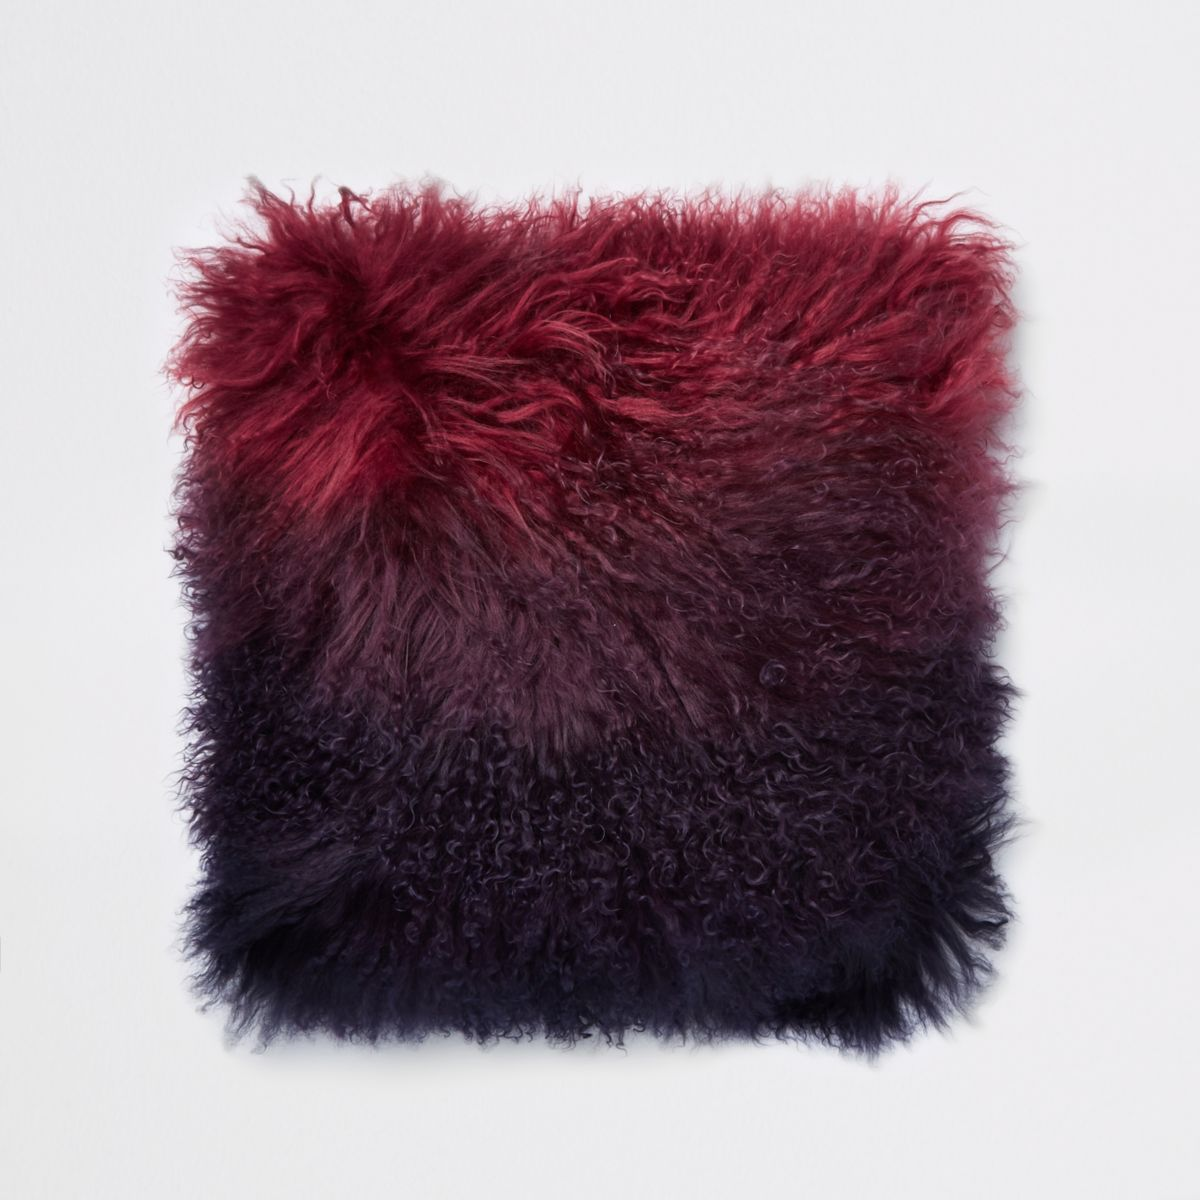 Dark red ombre Mongolian cushion